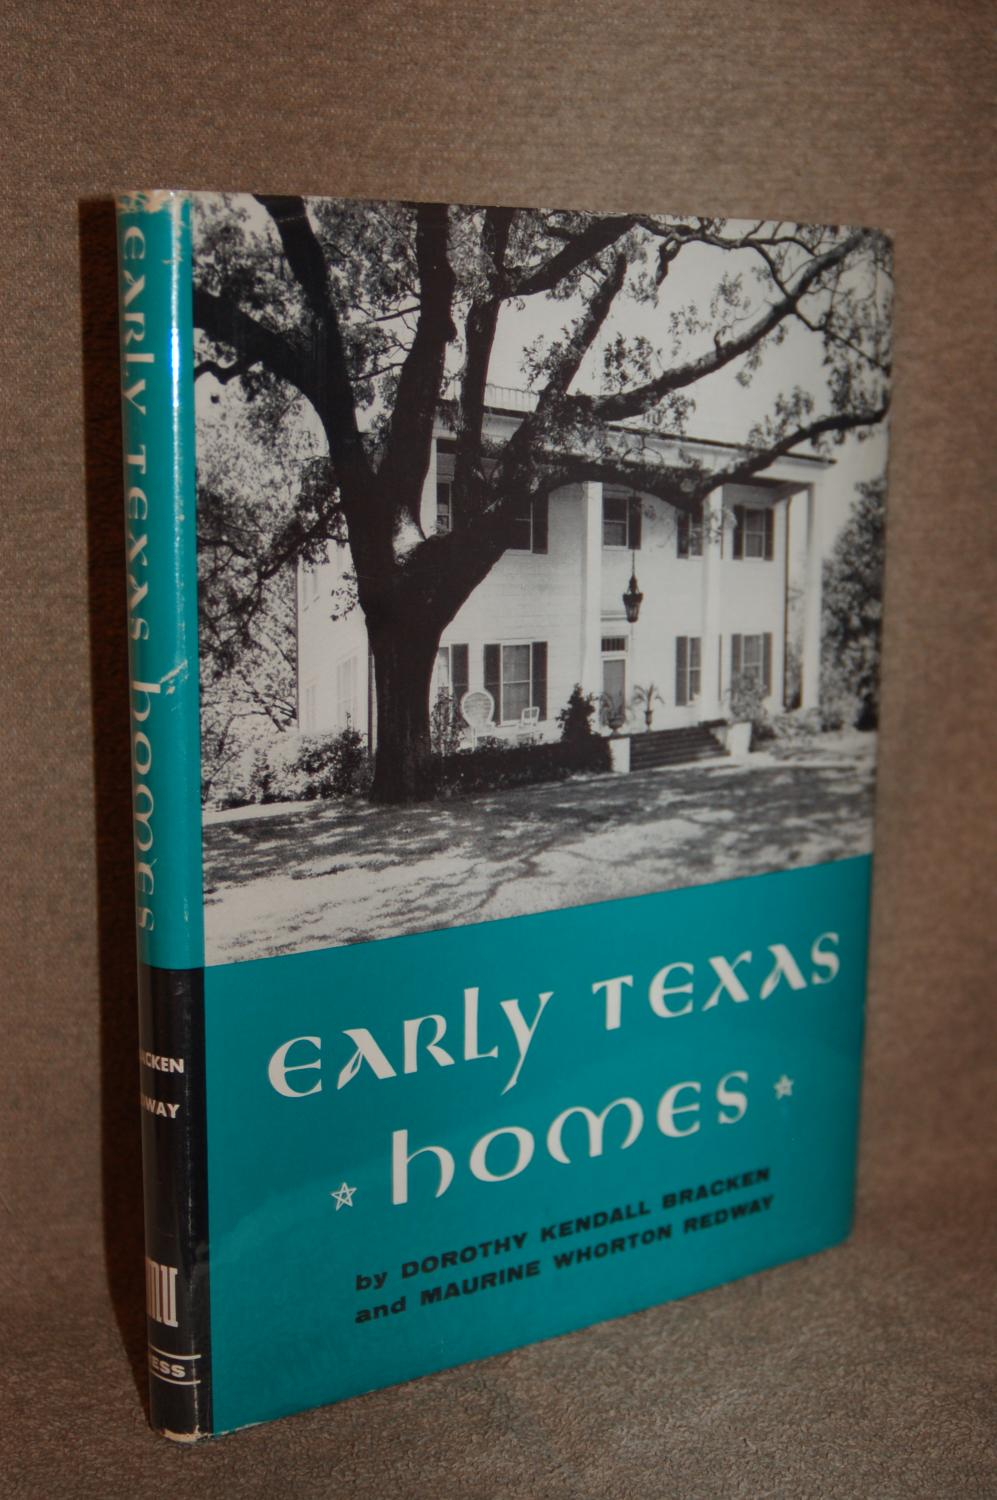 Early Texas Homes: Dorothy Kendall Bracken, Maurine Whorton Redway